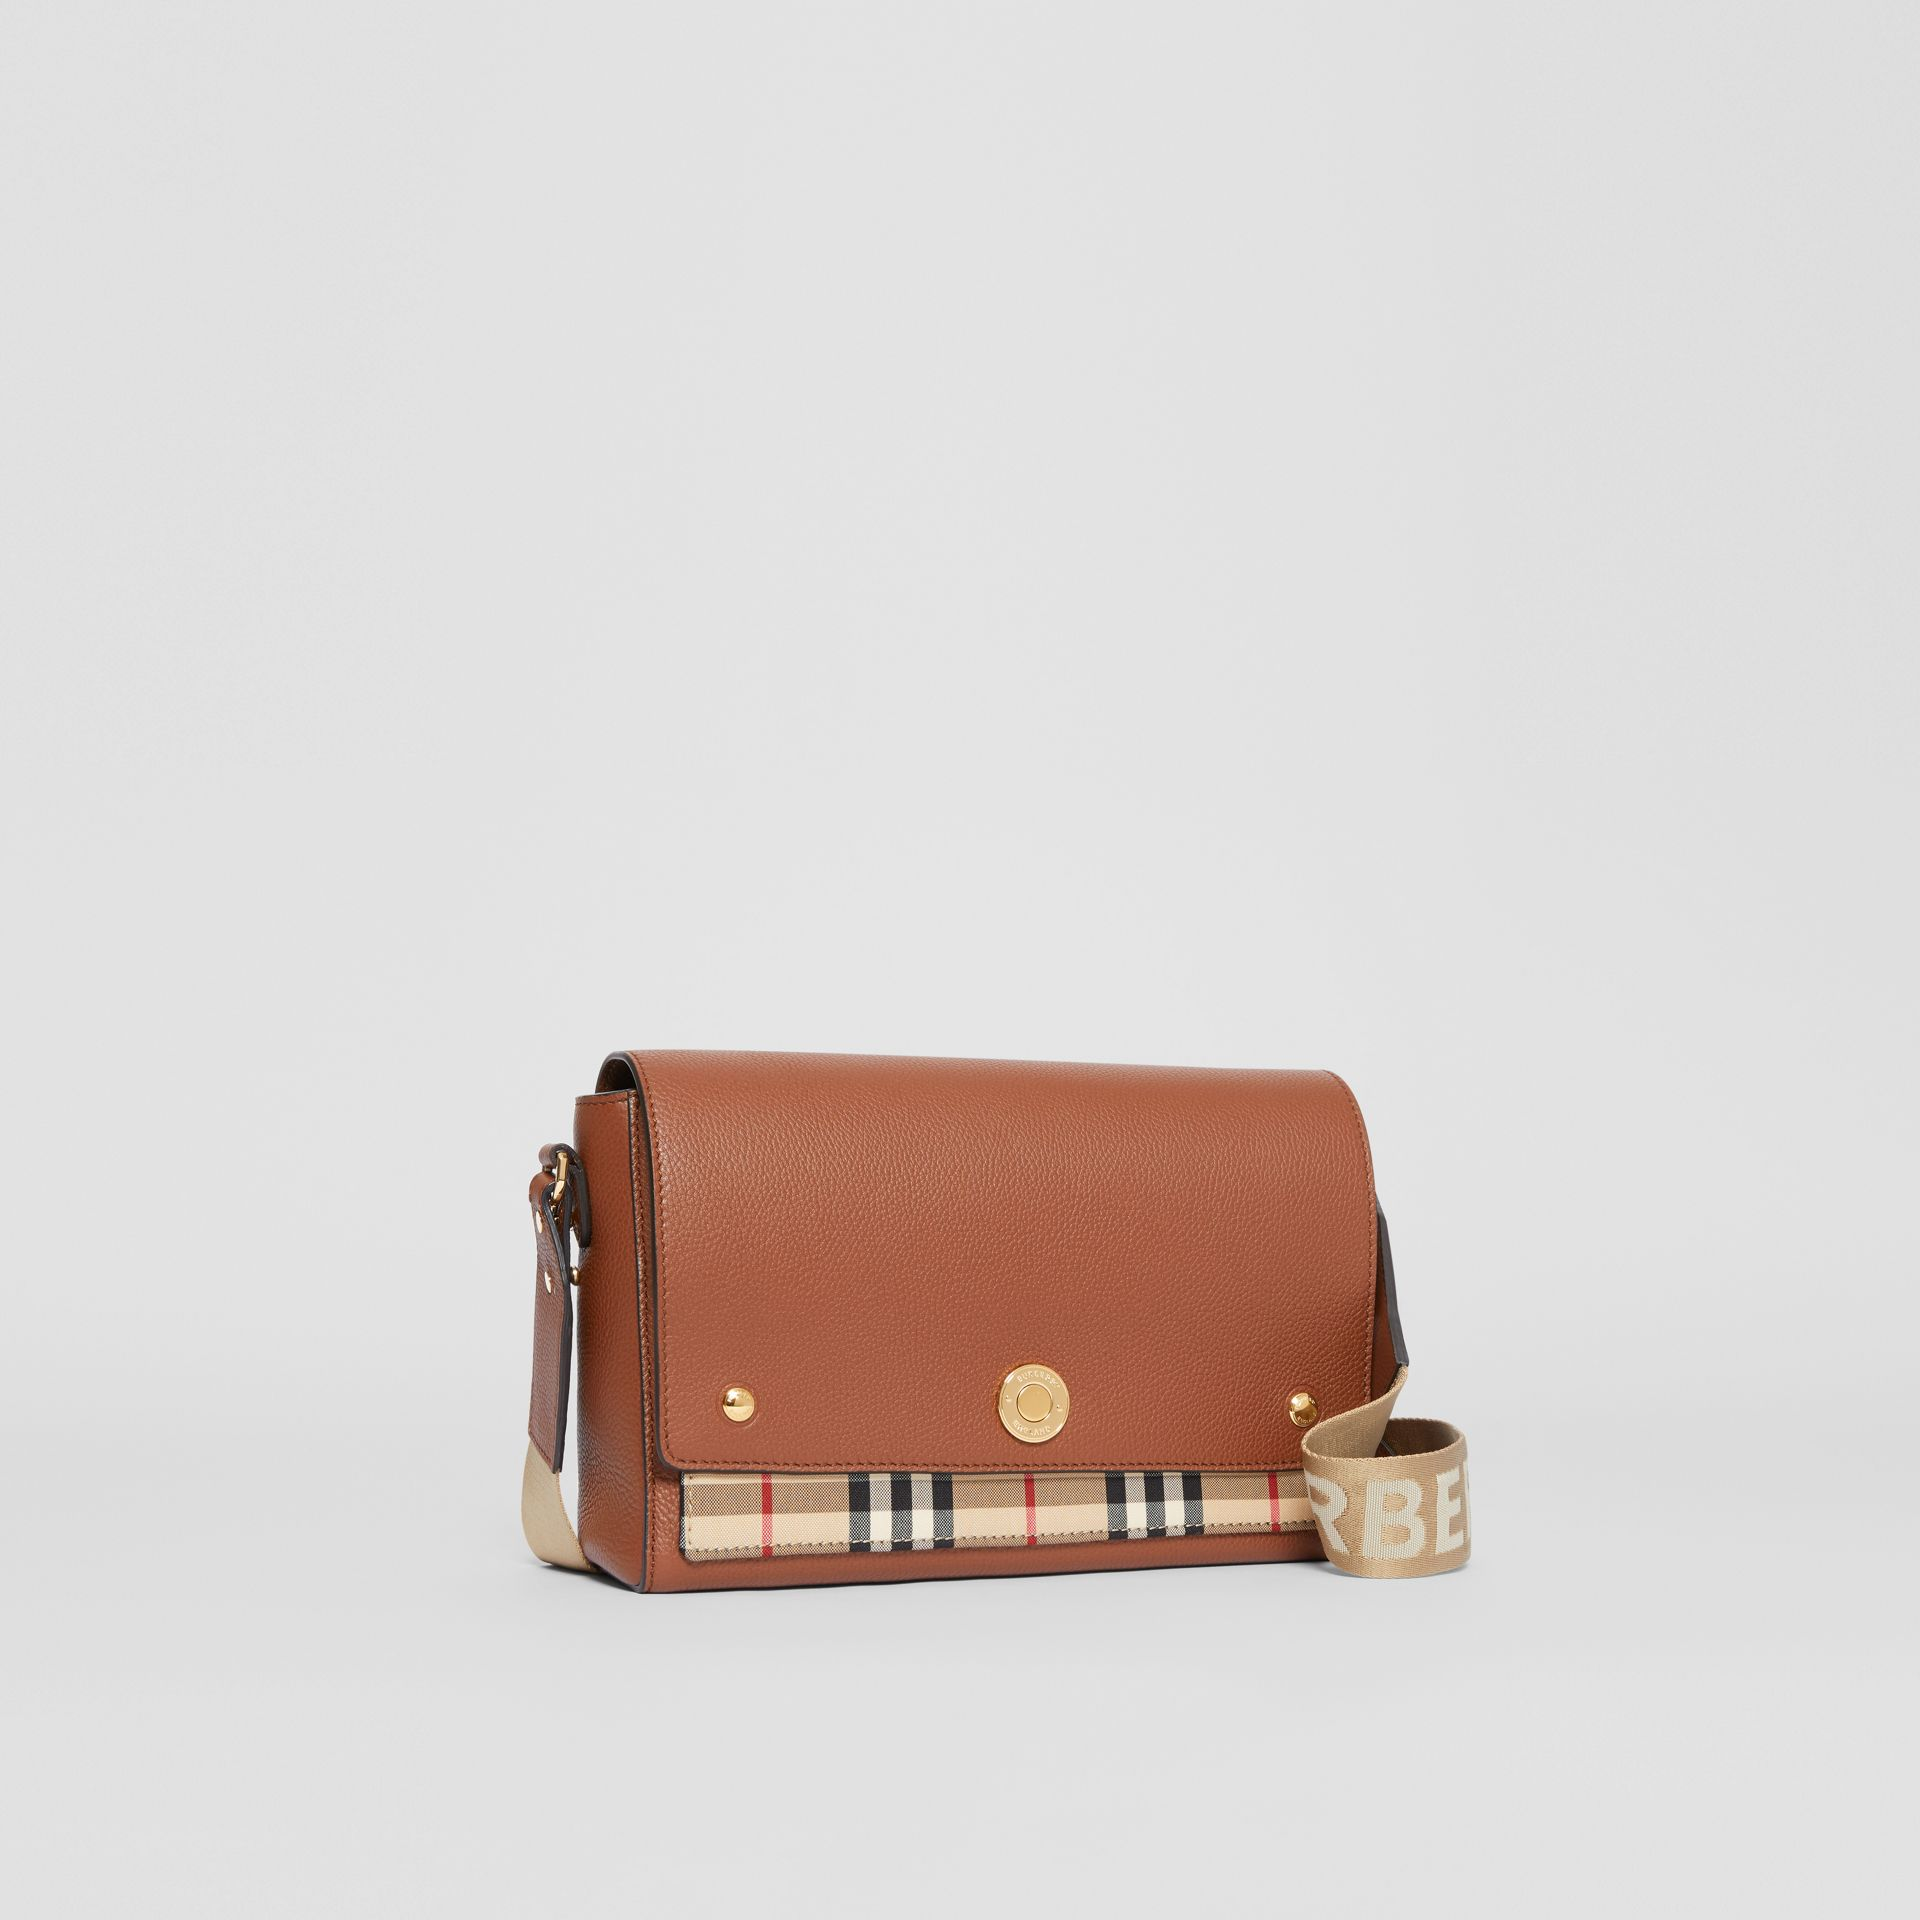 Leather and Vintage Check Note Crossbody Bag in Tan - Women | Burberry United Kingdom - gallery image 6